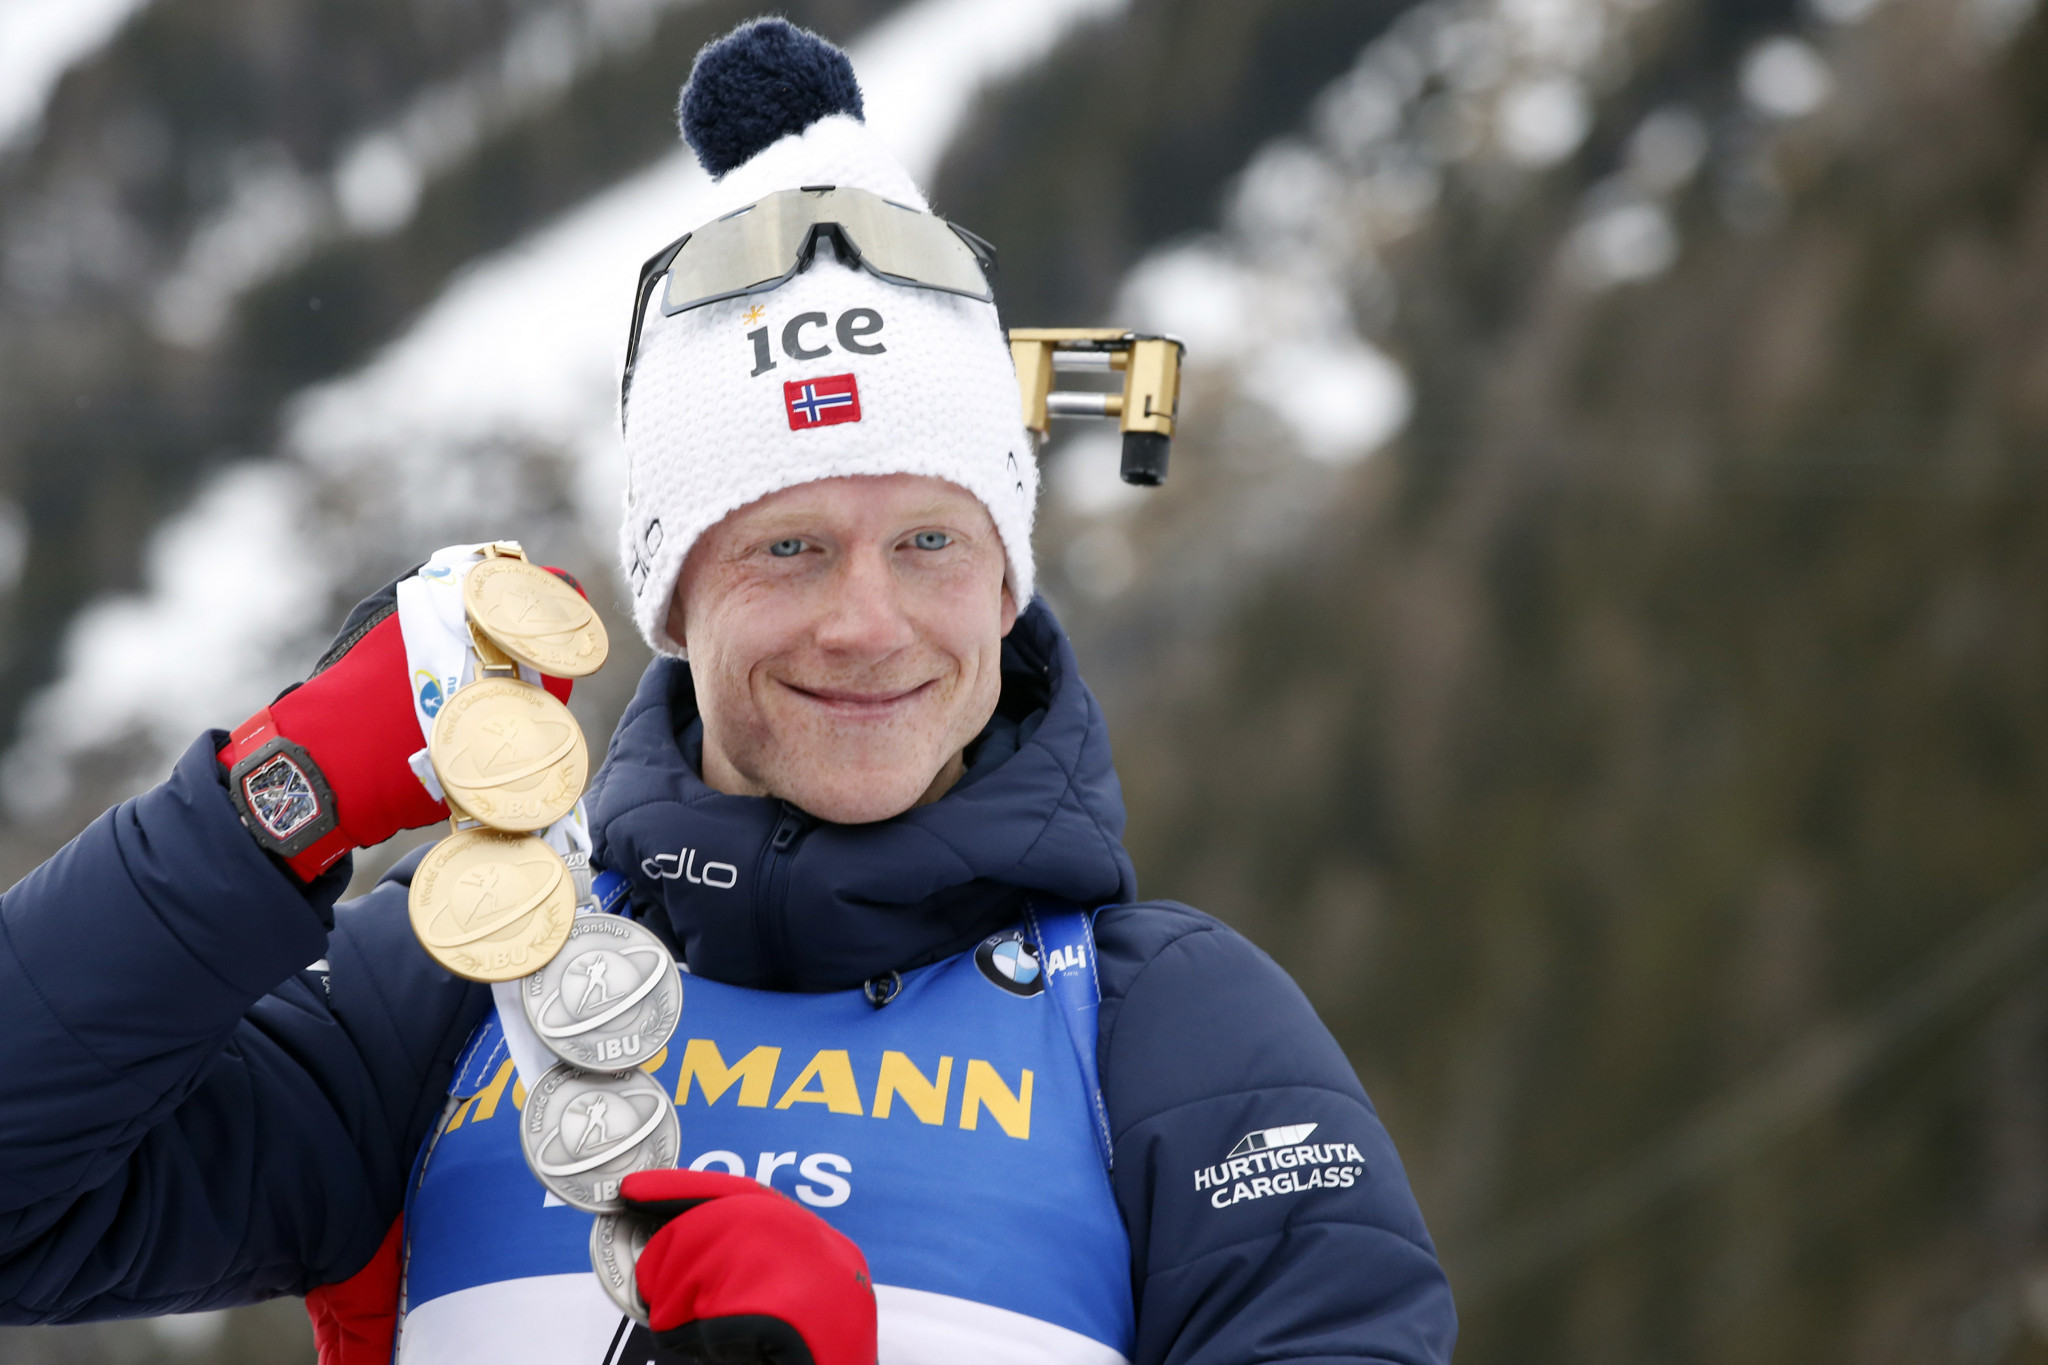 Johannes Thingnes Bø won his third gold medal of the event ©Getty Images